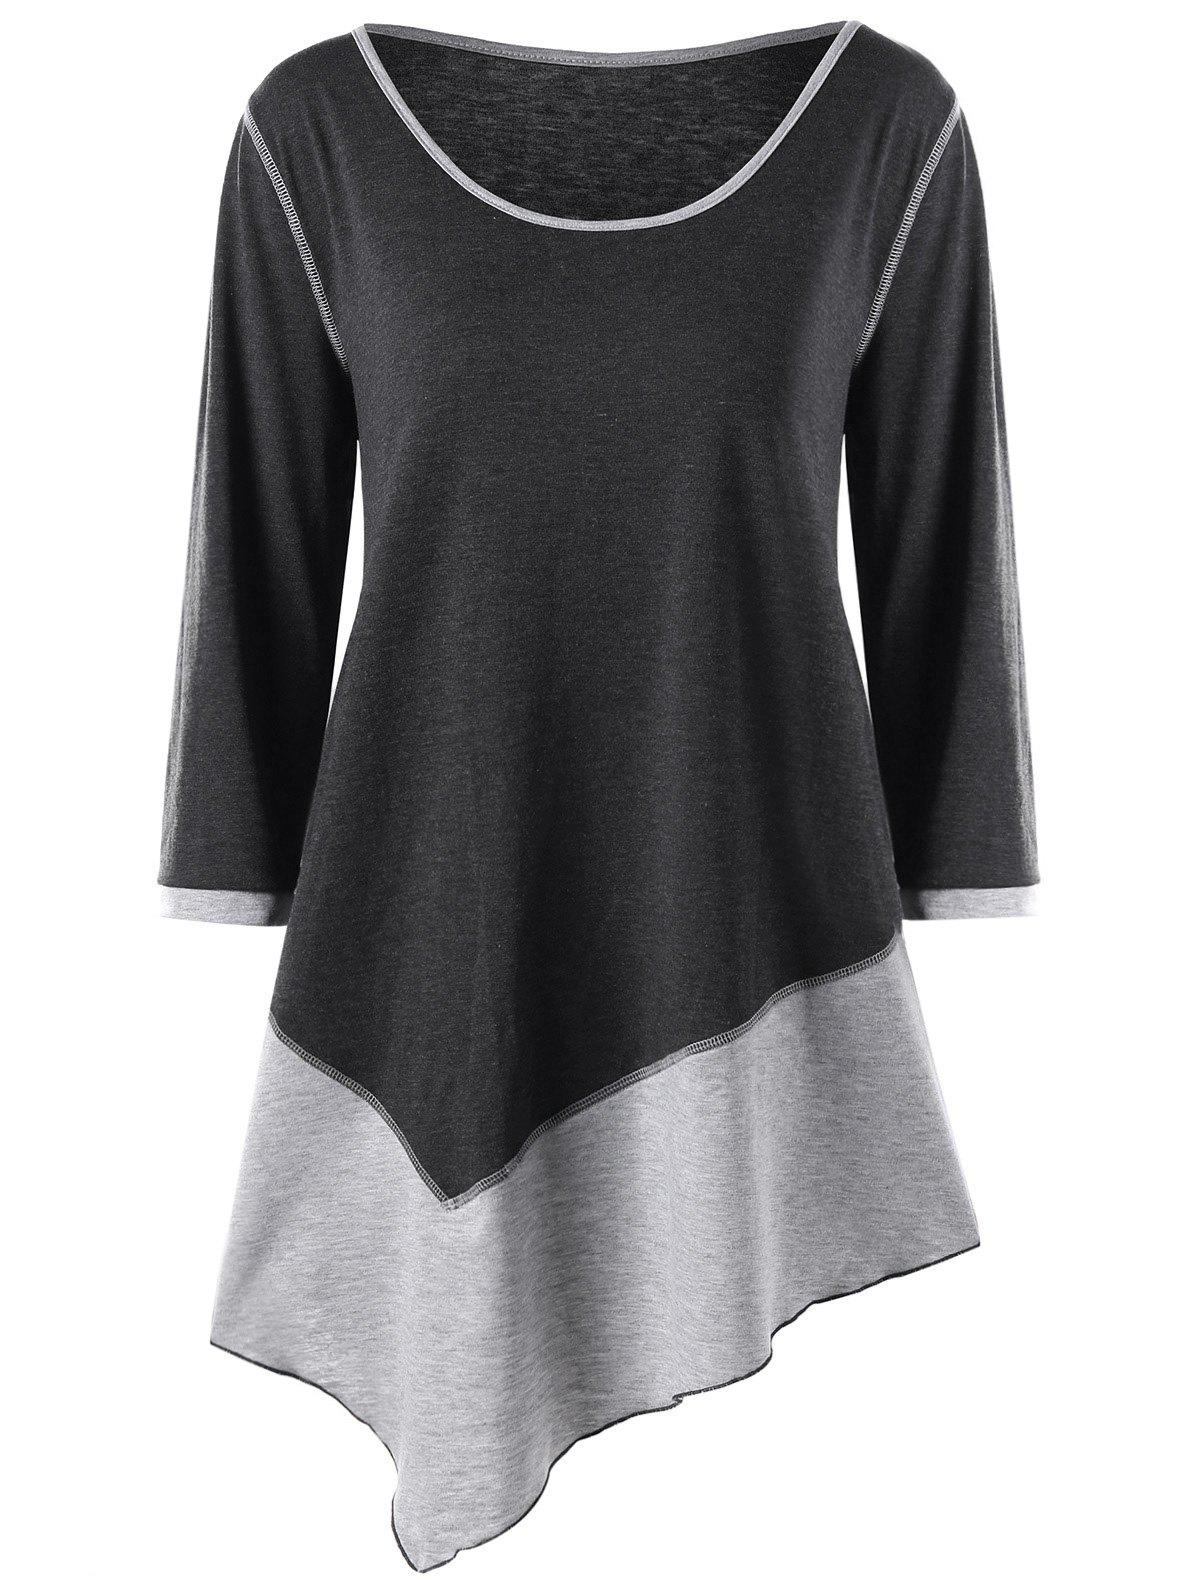 Plus Size Two Tone Asymmetrical Tee plus size two tone asymmetric tee